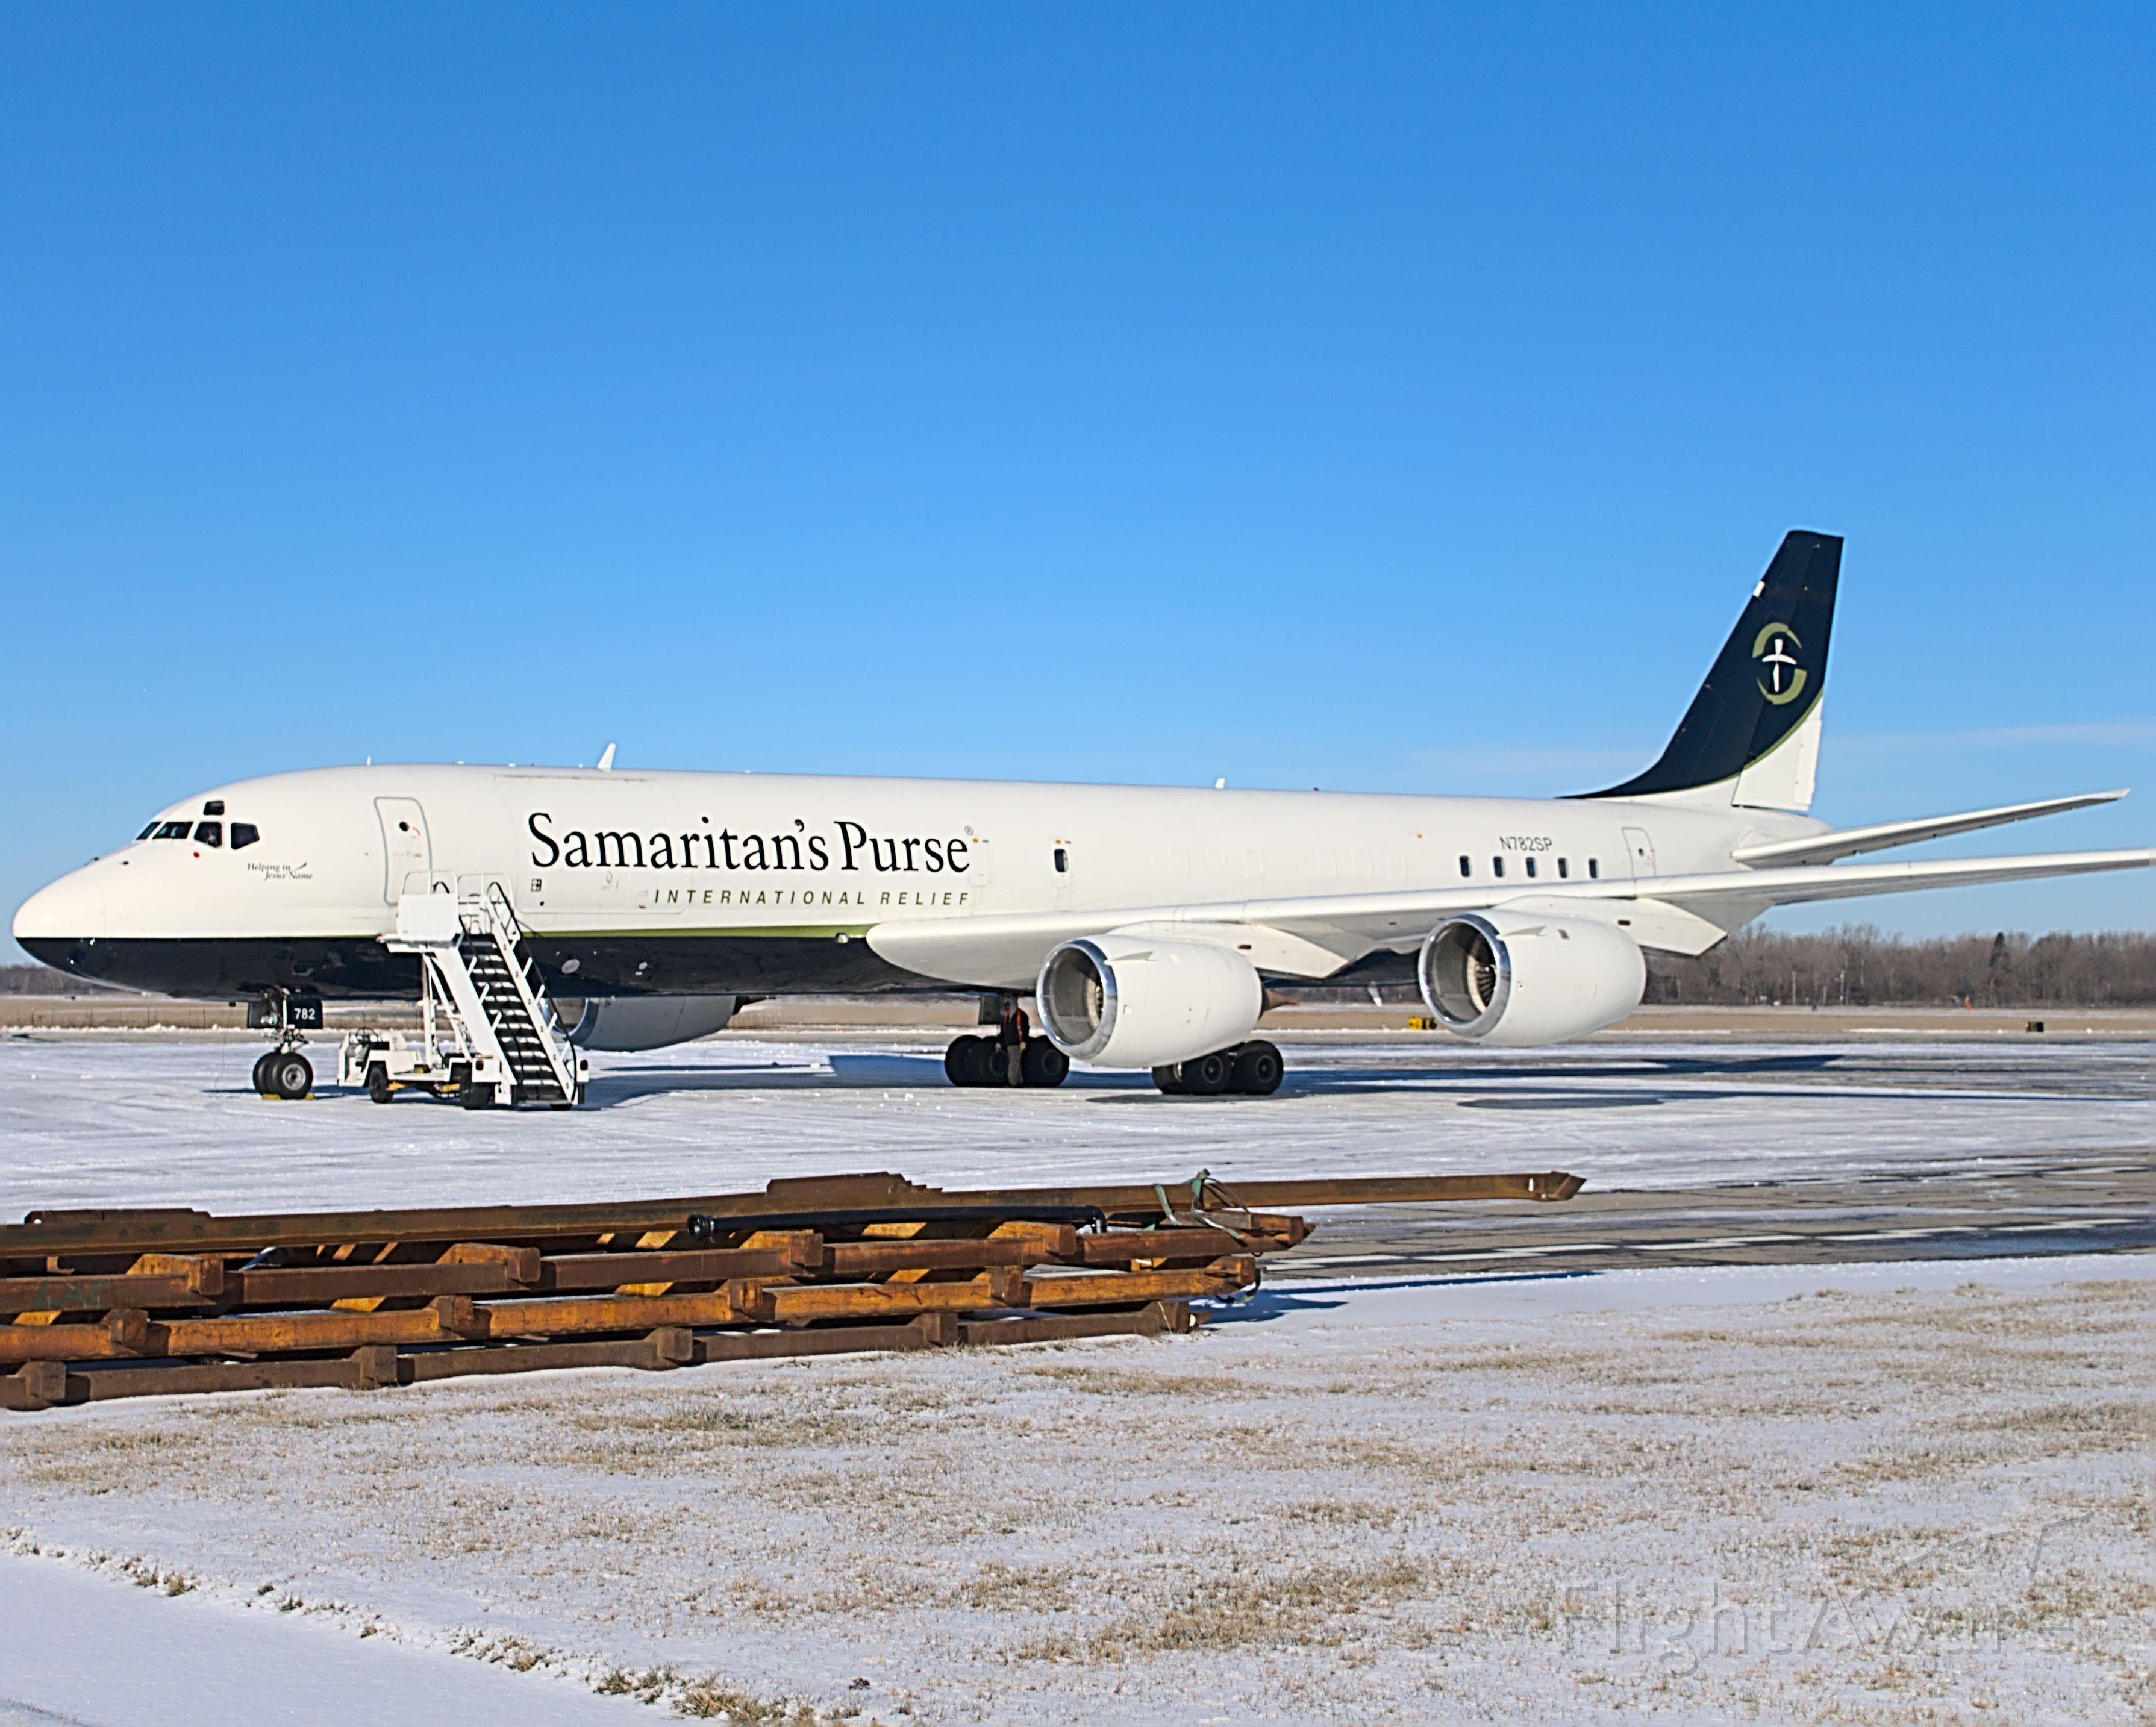 McDonnell Douglas DC-8-70 (N782SP) - N782SP. The beautiful Samaritans Purse DC-8-72F basking in the morning snow, after coming in from Greensboro. Picked up some papers from the FAA/FSDO building and did some Kai-Tak style approaches later in the afternoon for pilot certification.<br /><br />01/27/2021